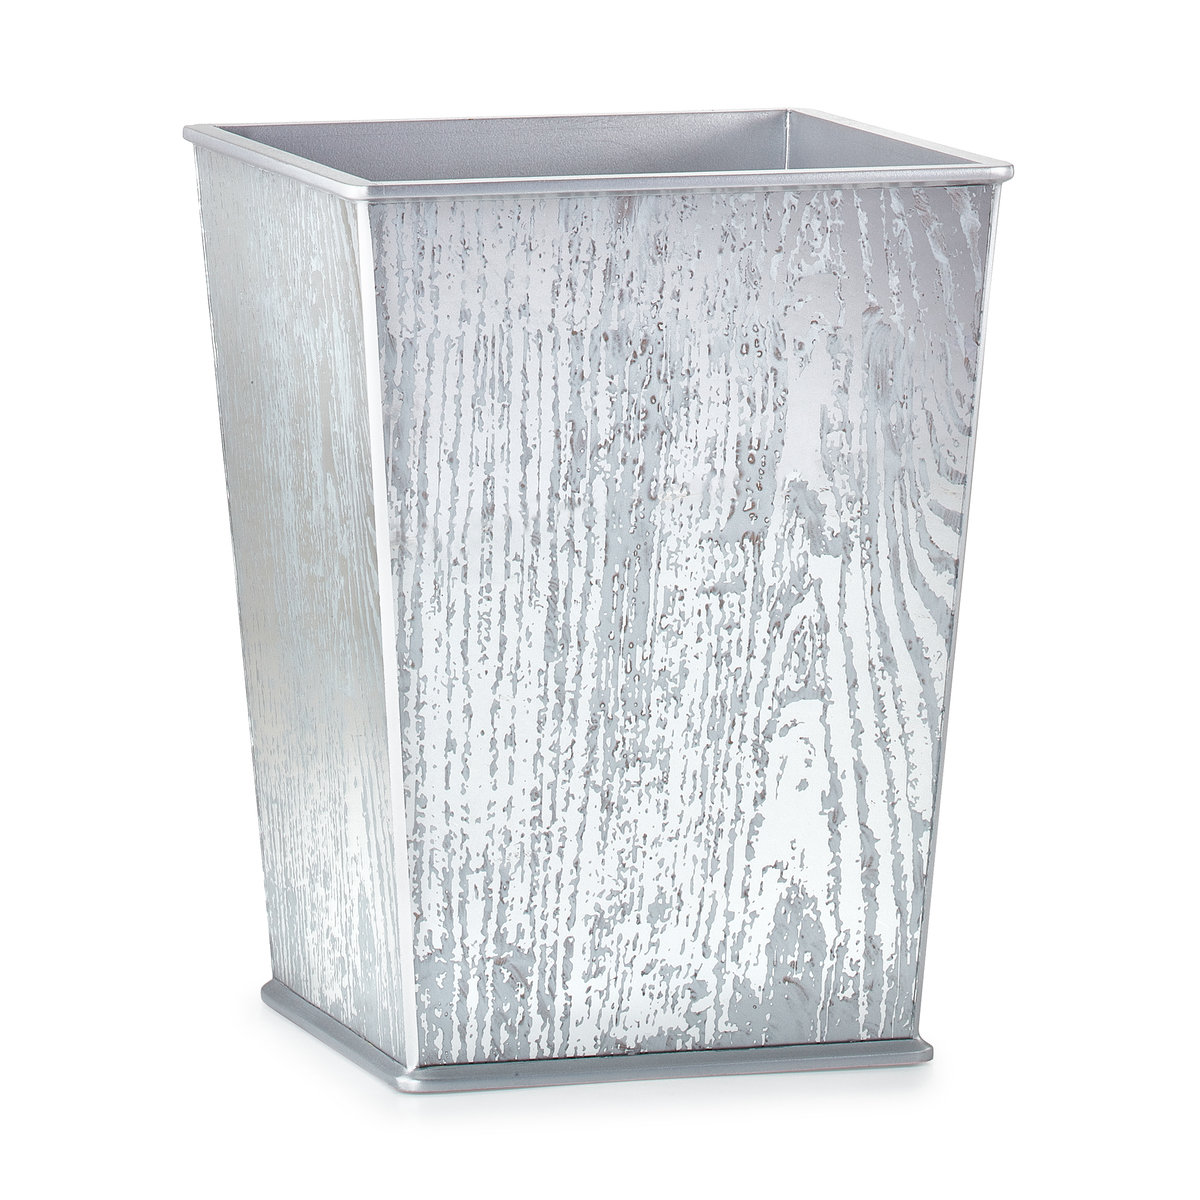 Alexa hampton for labrazel bois waste basket 1200 xxx q85